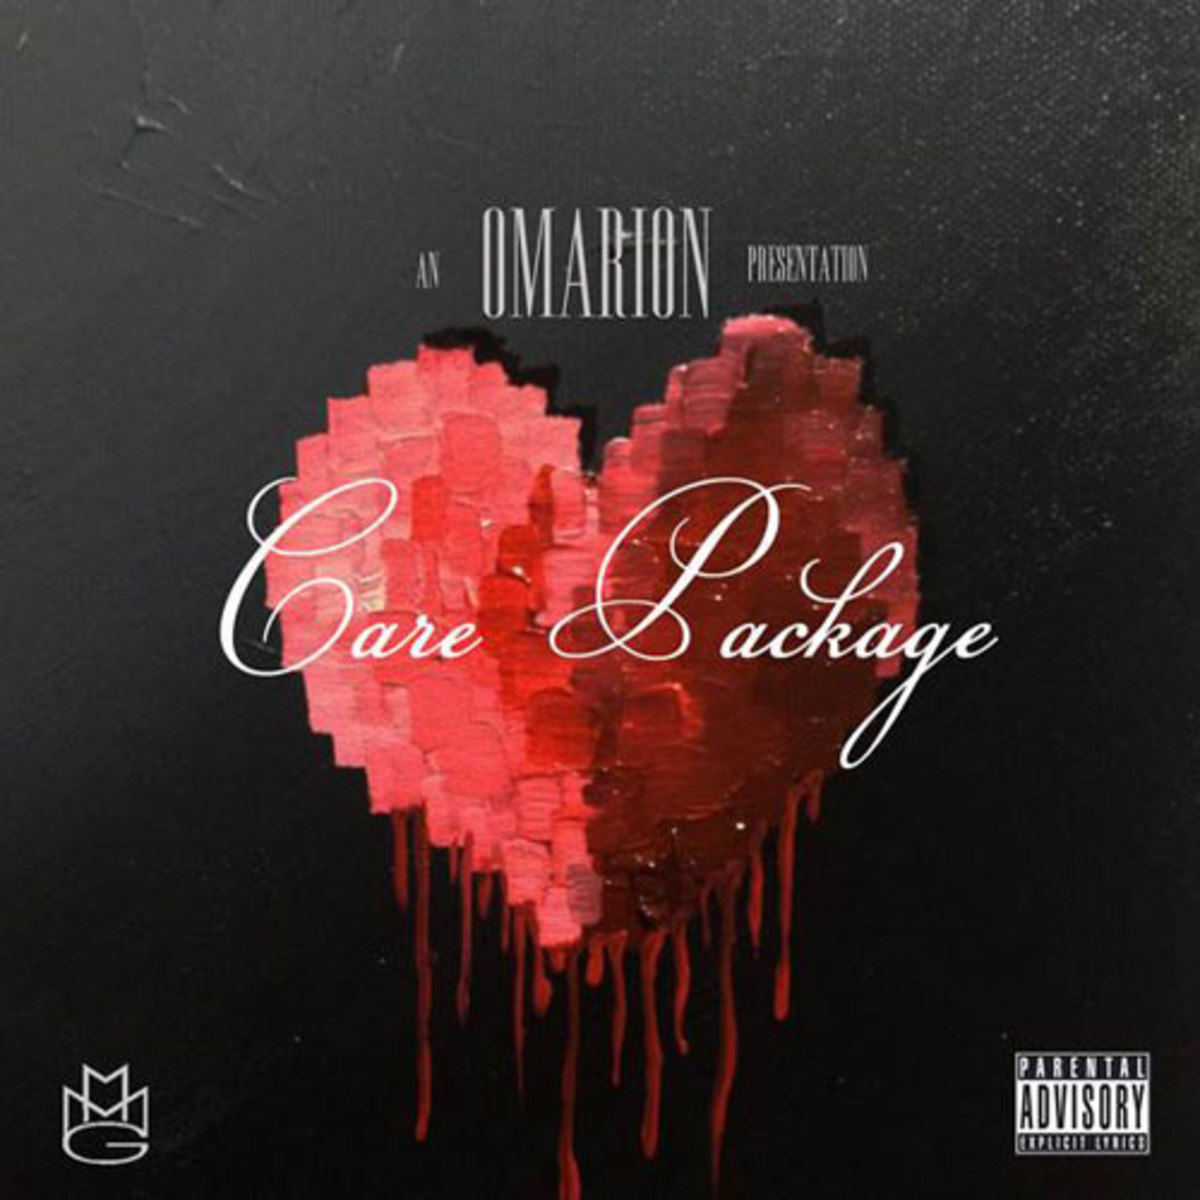 omarion-carepackage.jpg